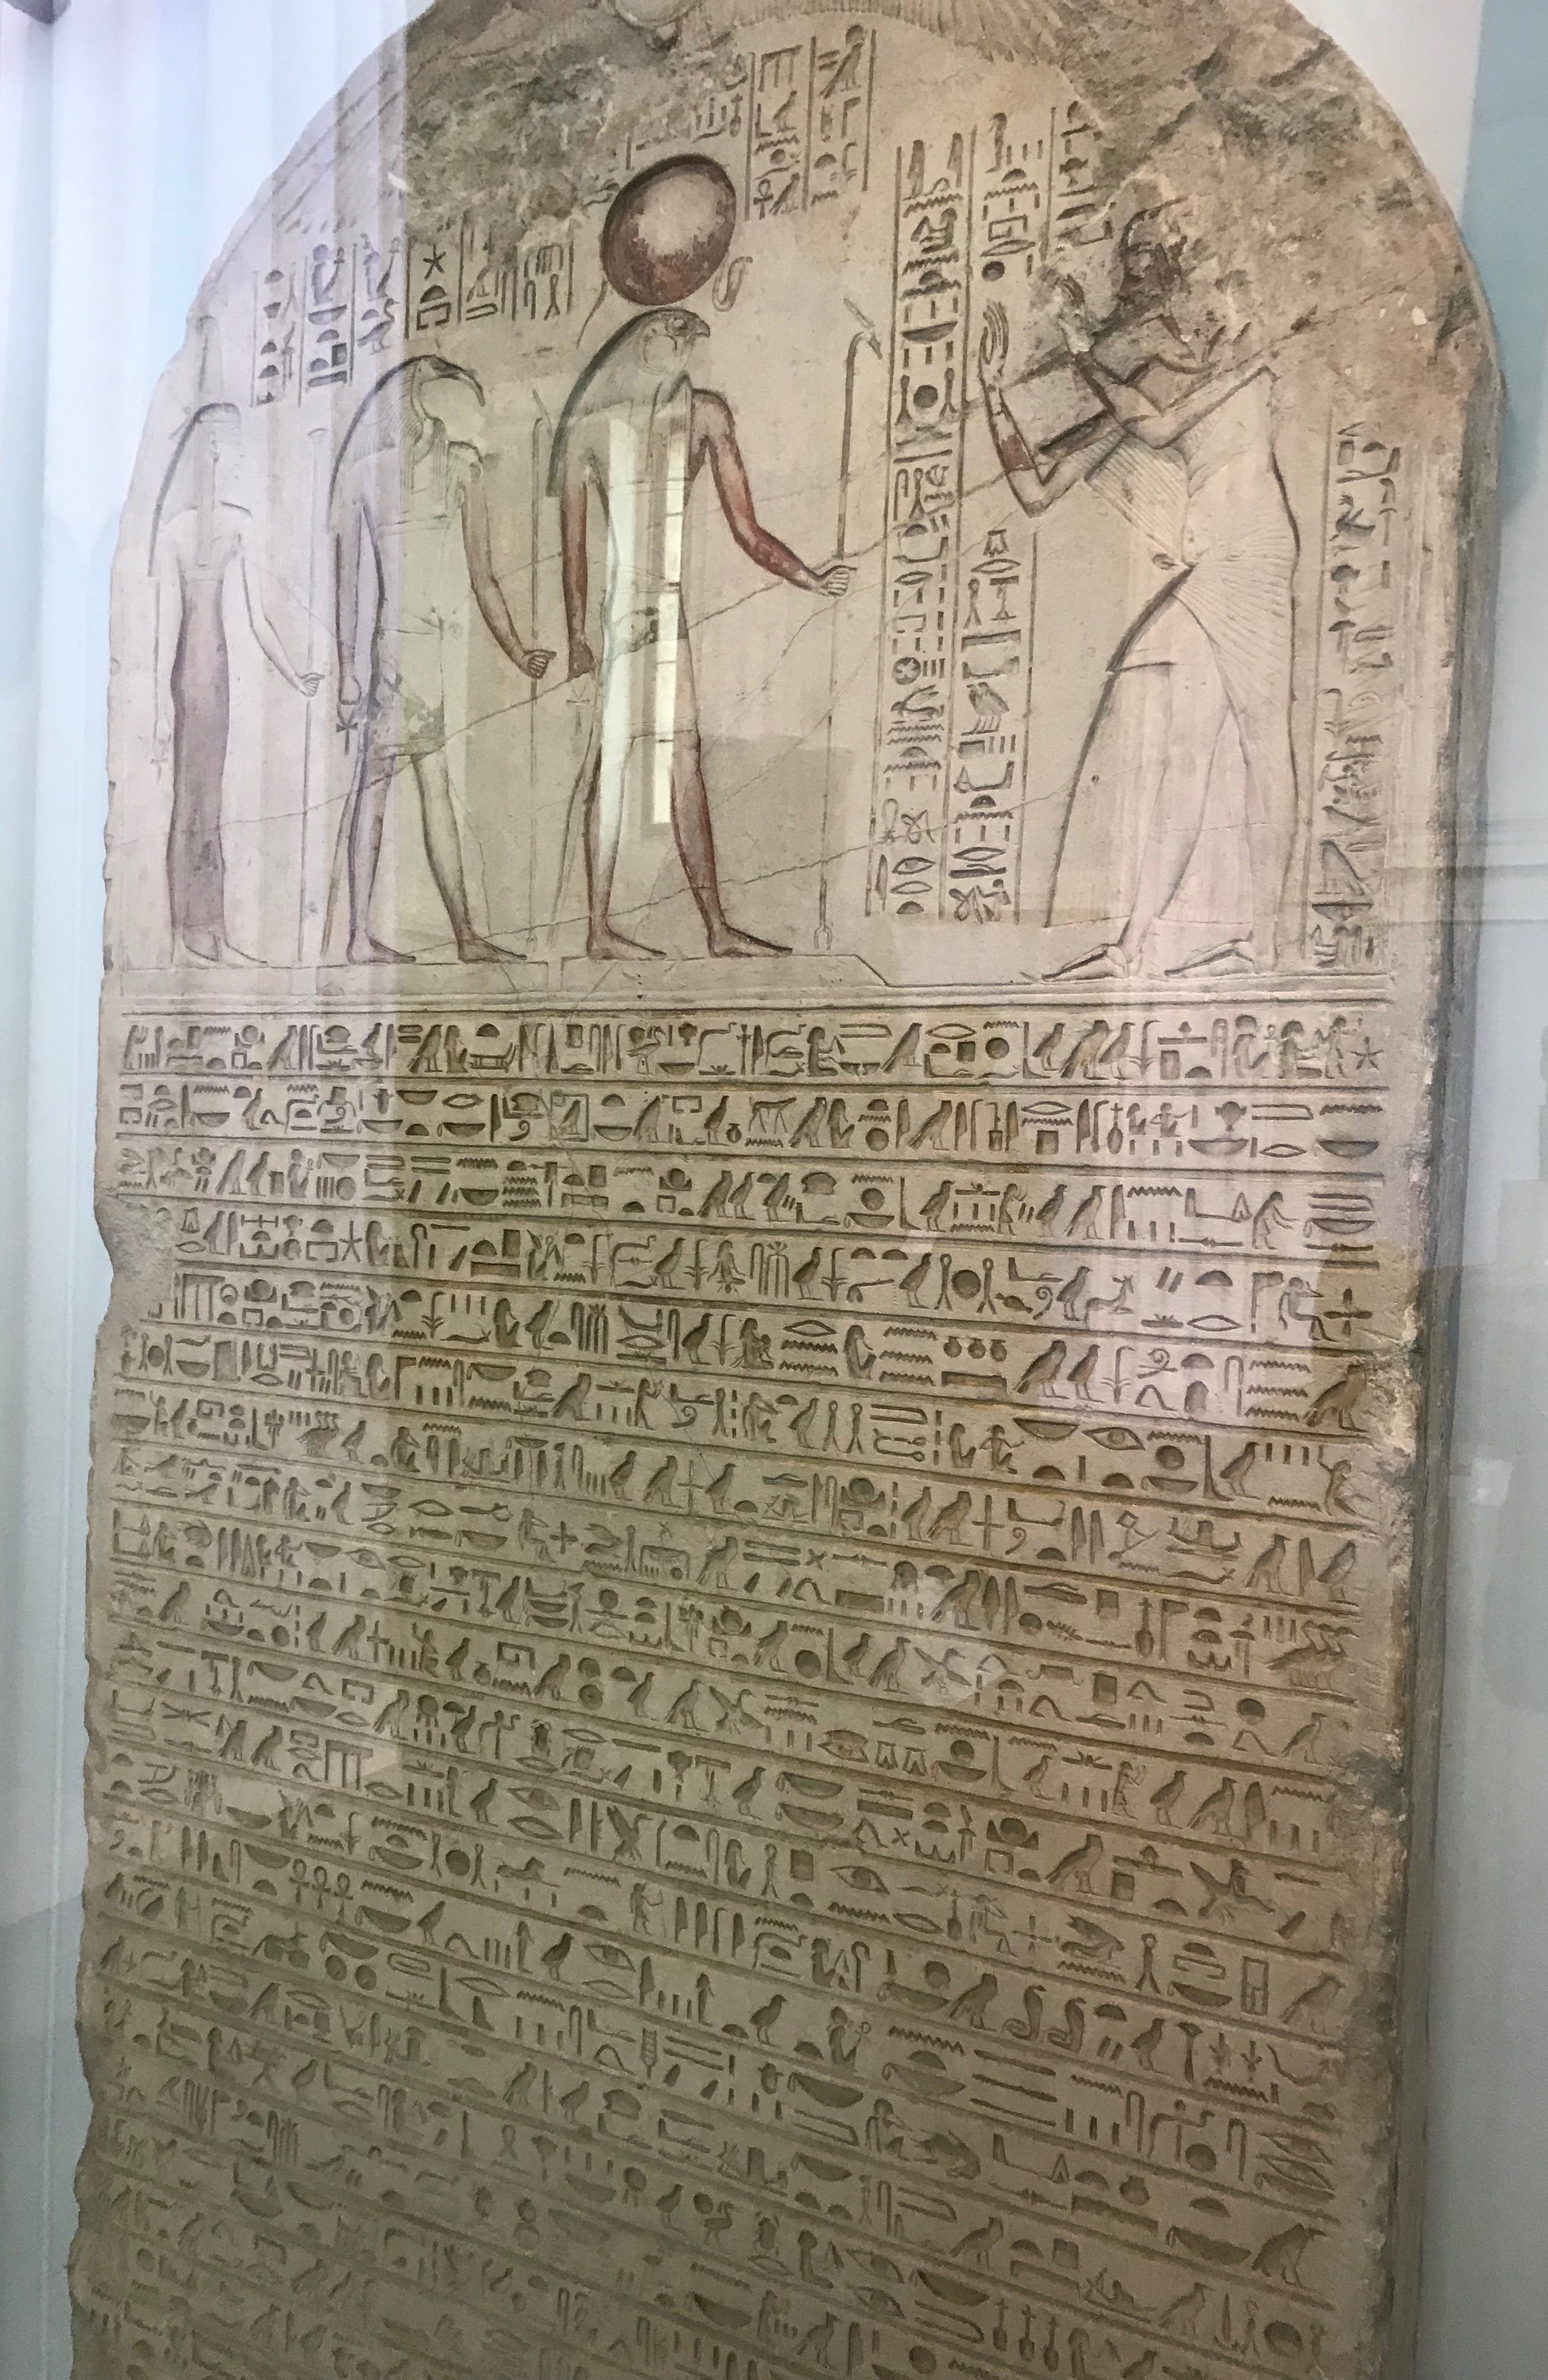 (fictional) Notes from The British Museum #10